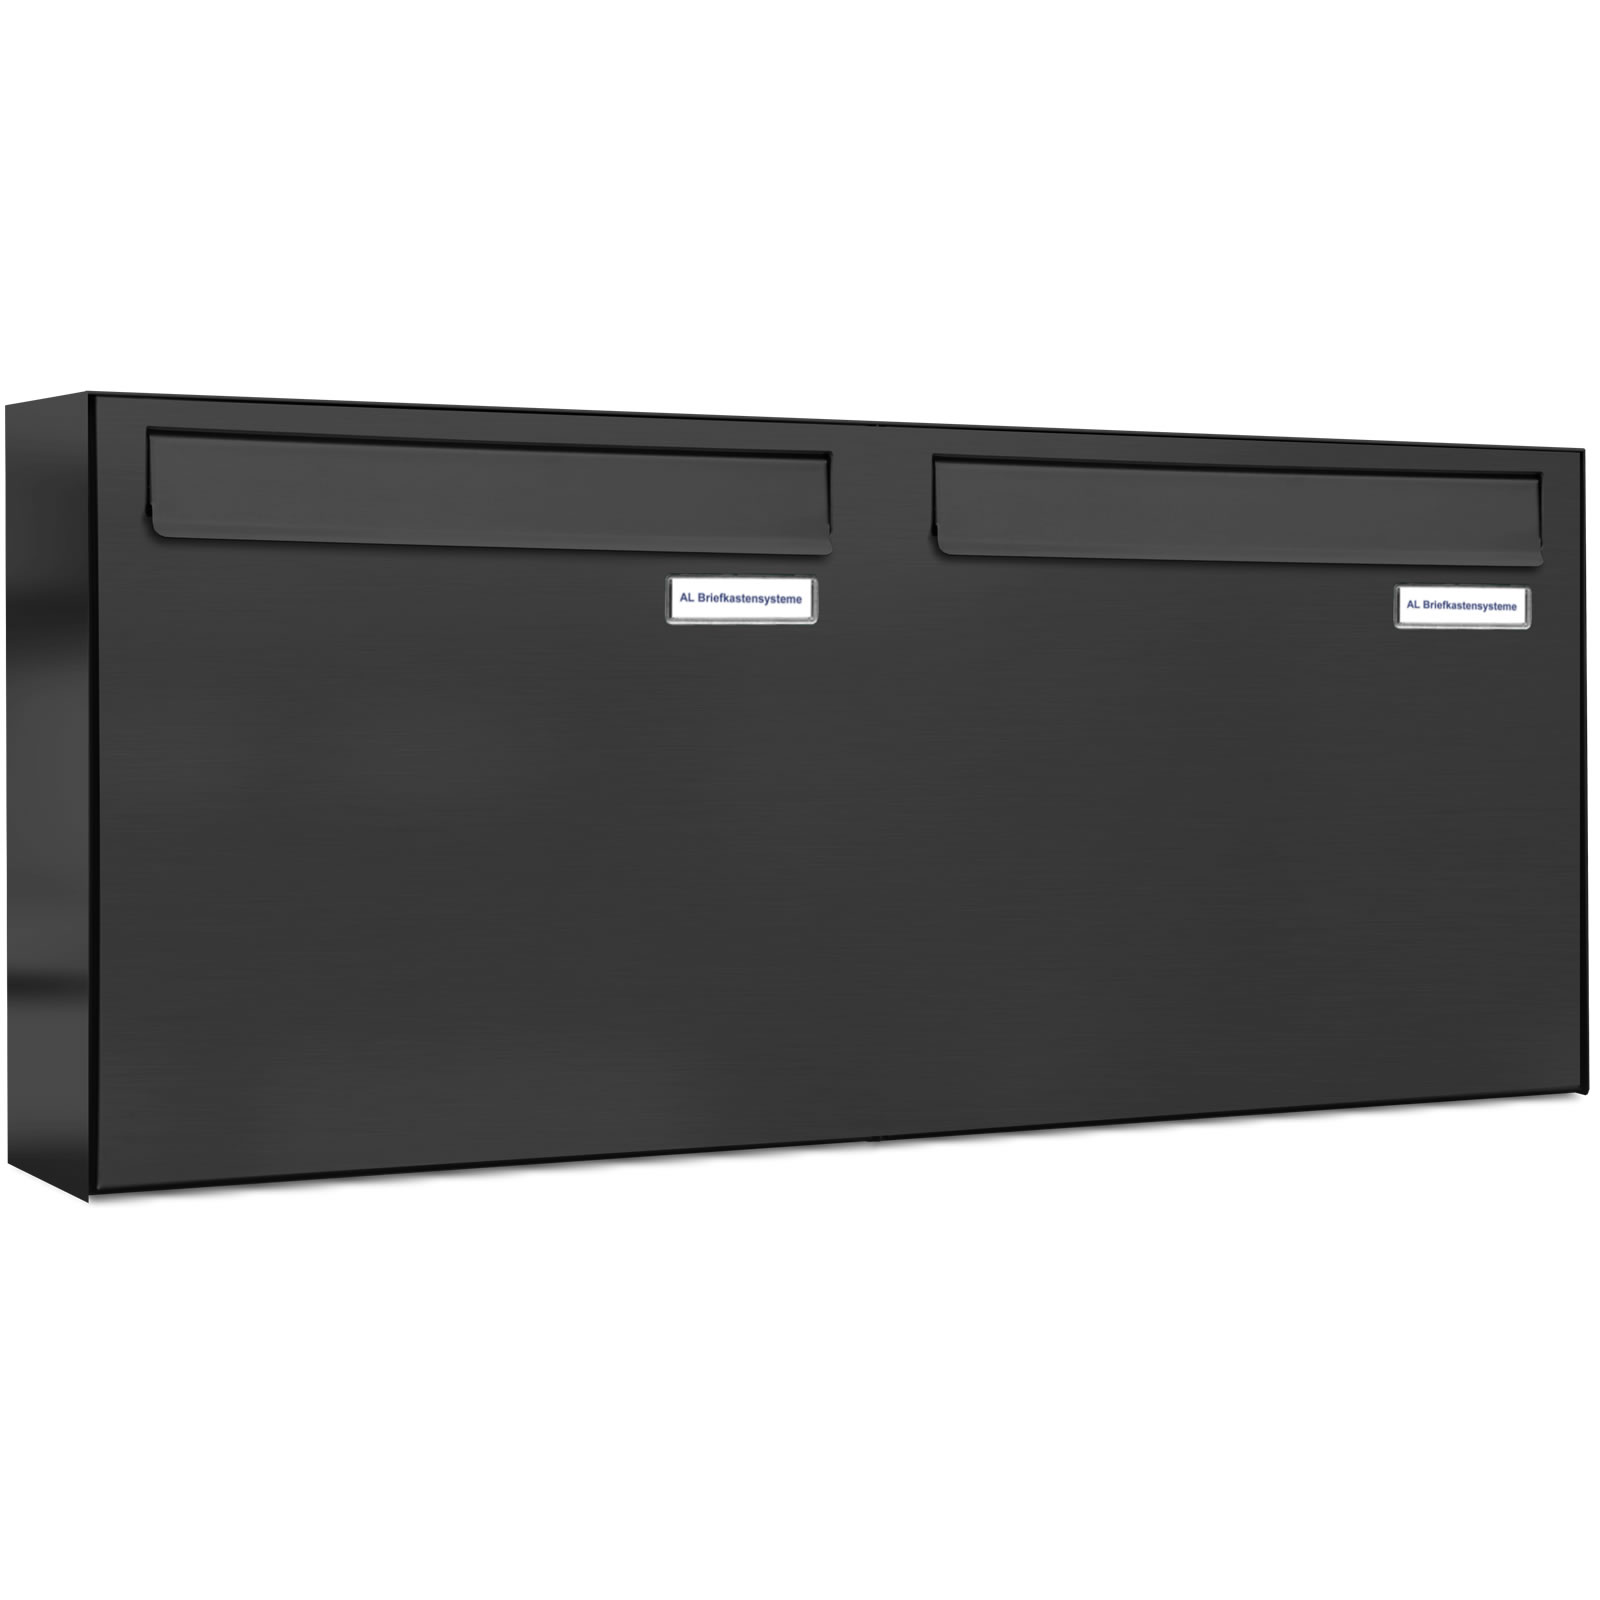 2er 2x1 briefkasten anlage t r zaundurchwurf ral 7016 anthrazit ebay. Black Bedroom Furniture Sets. Home Design Ideas